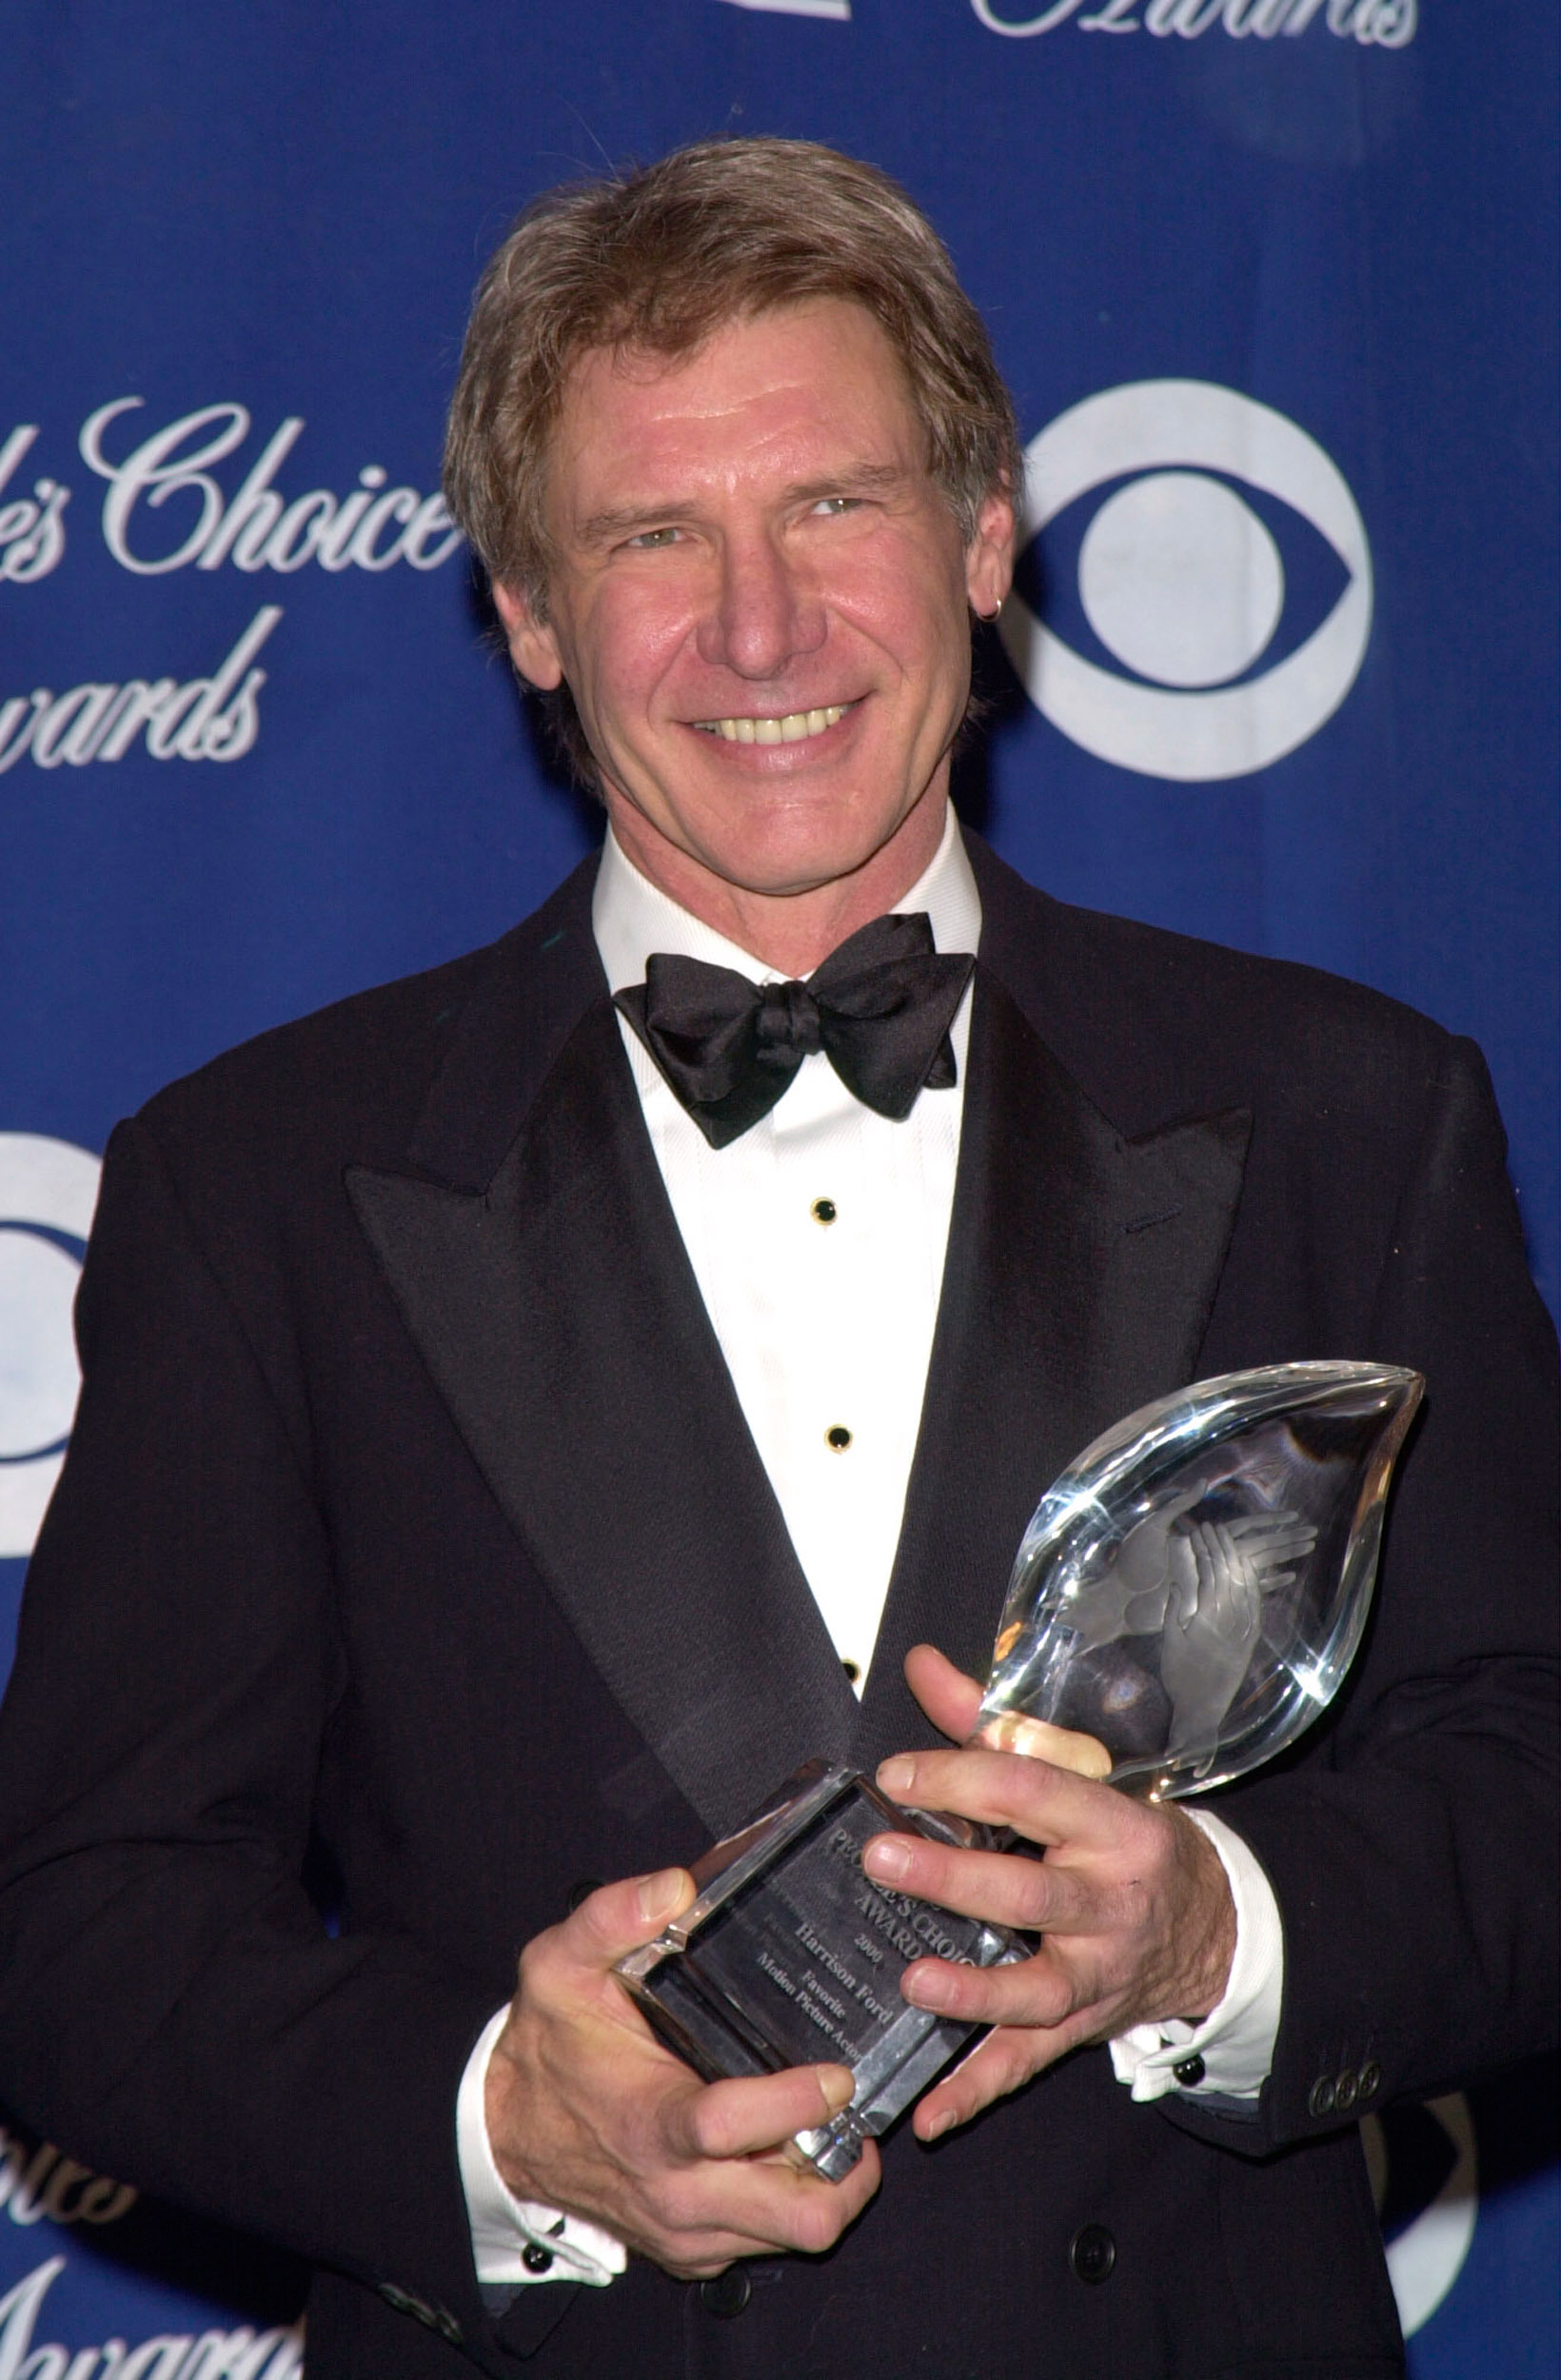 harrison ford with an award